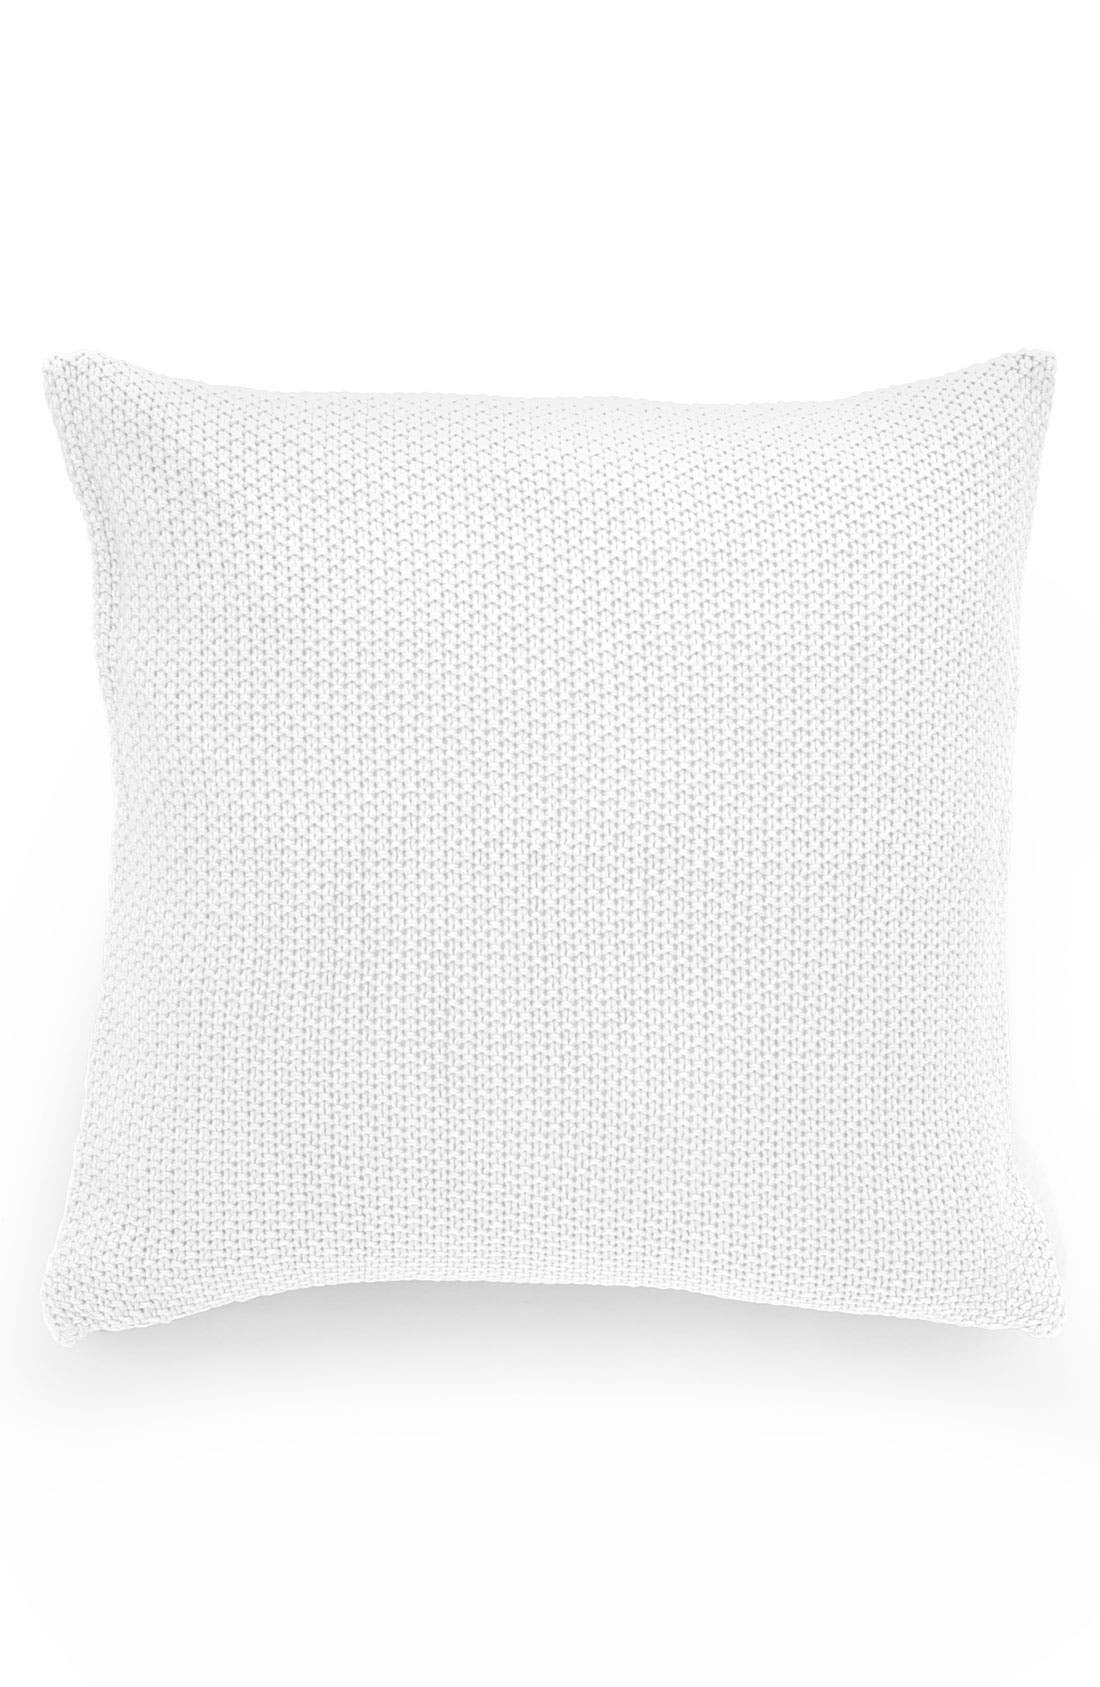 Alternate Image 1 Selected - Donna Karan 'The Essential' Euro Pillow Sham